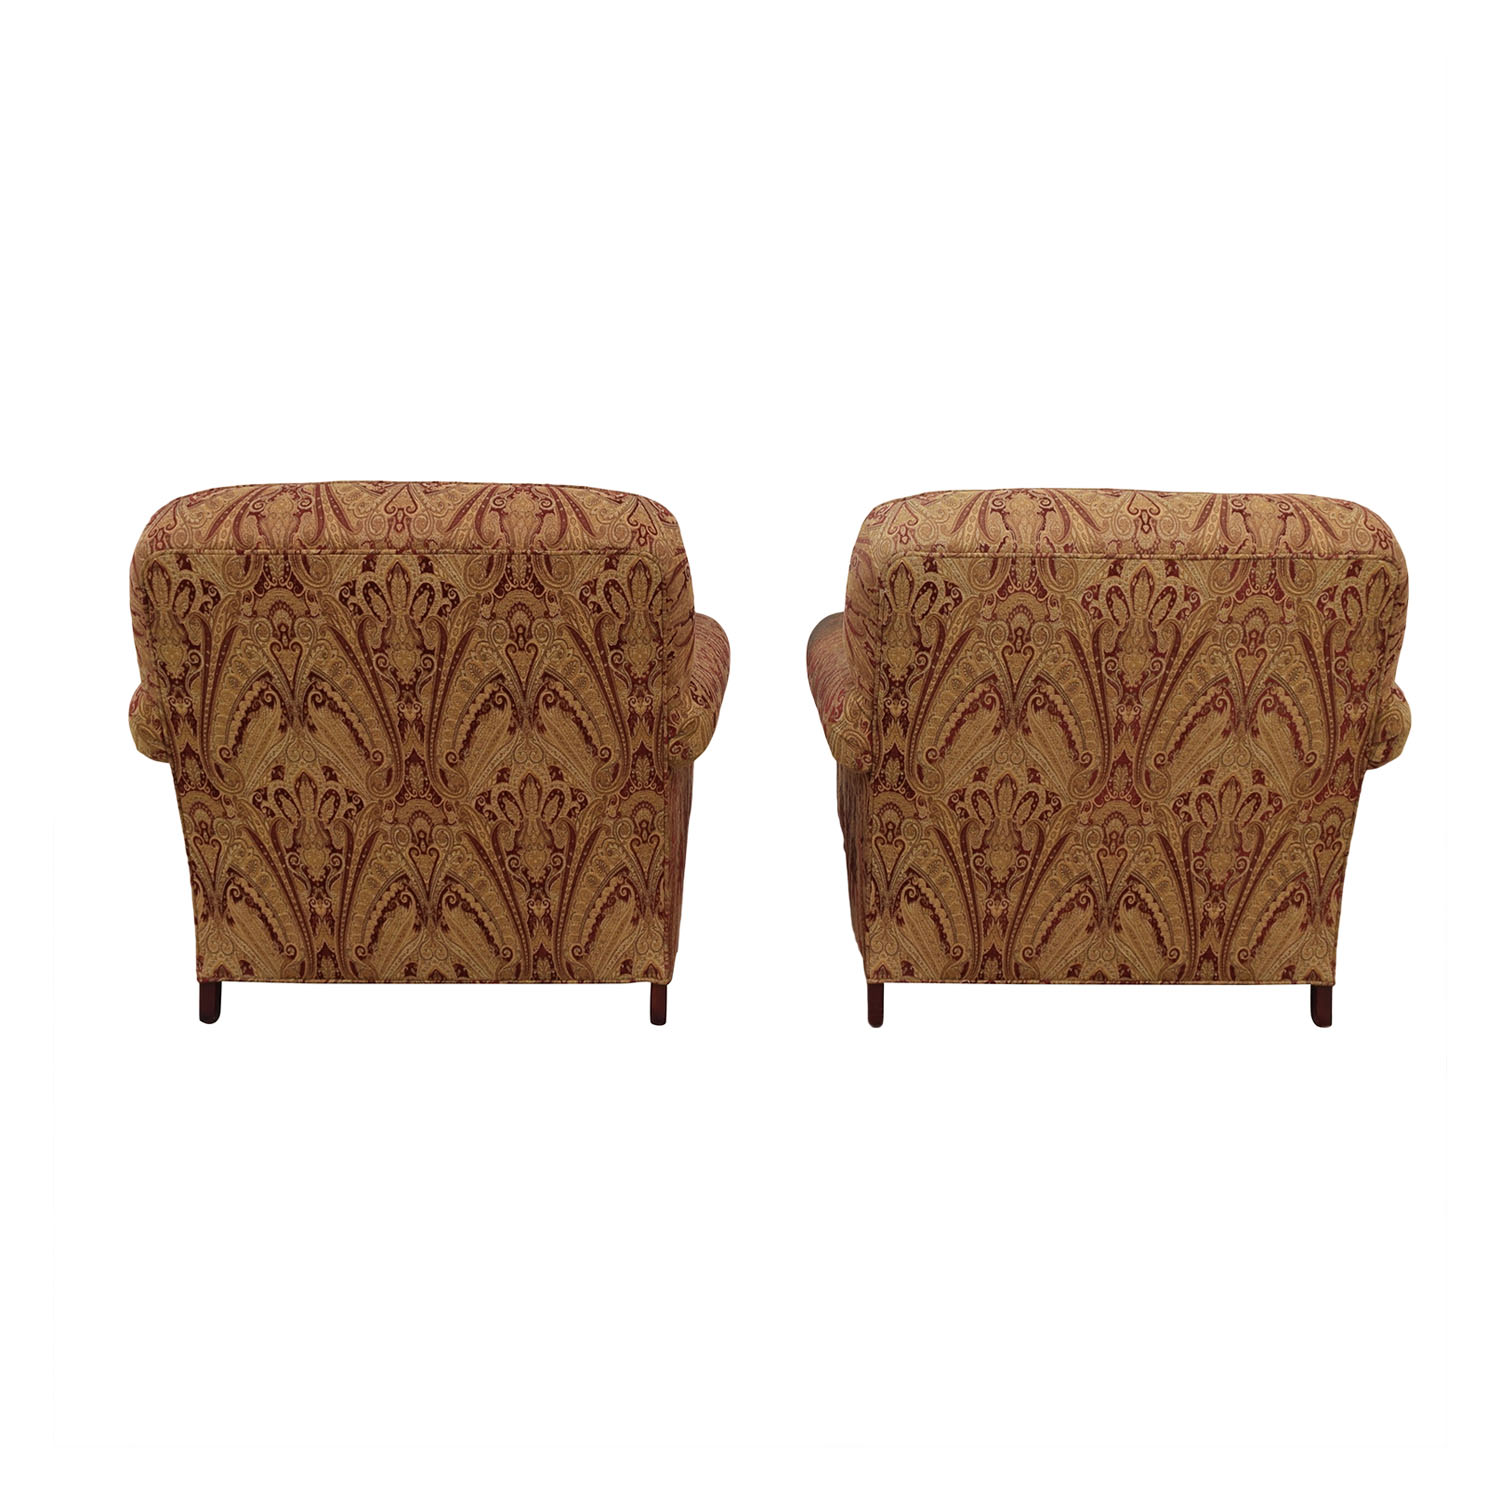 Charles Stewart Co. Charles Stewart Co.  Beige and Red Accent Chairs price